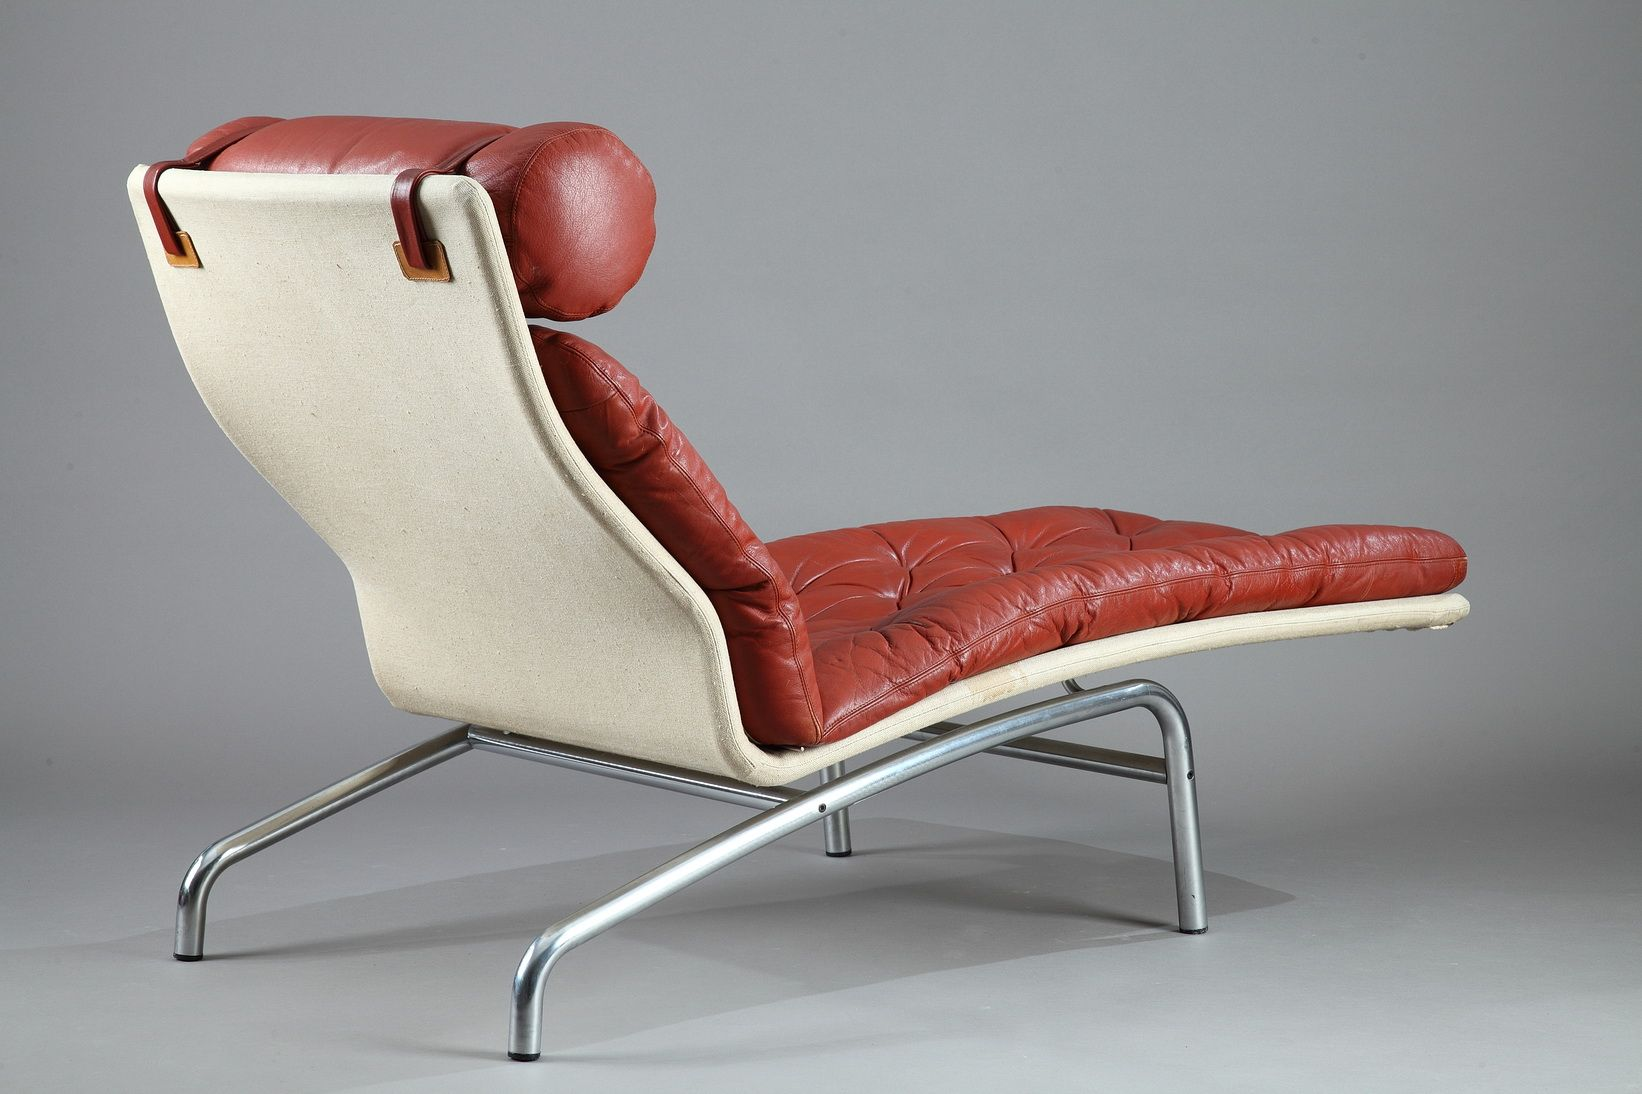 Chaise longue with a mat chromed steel frame and red for Chaise longue frame